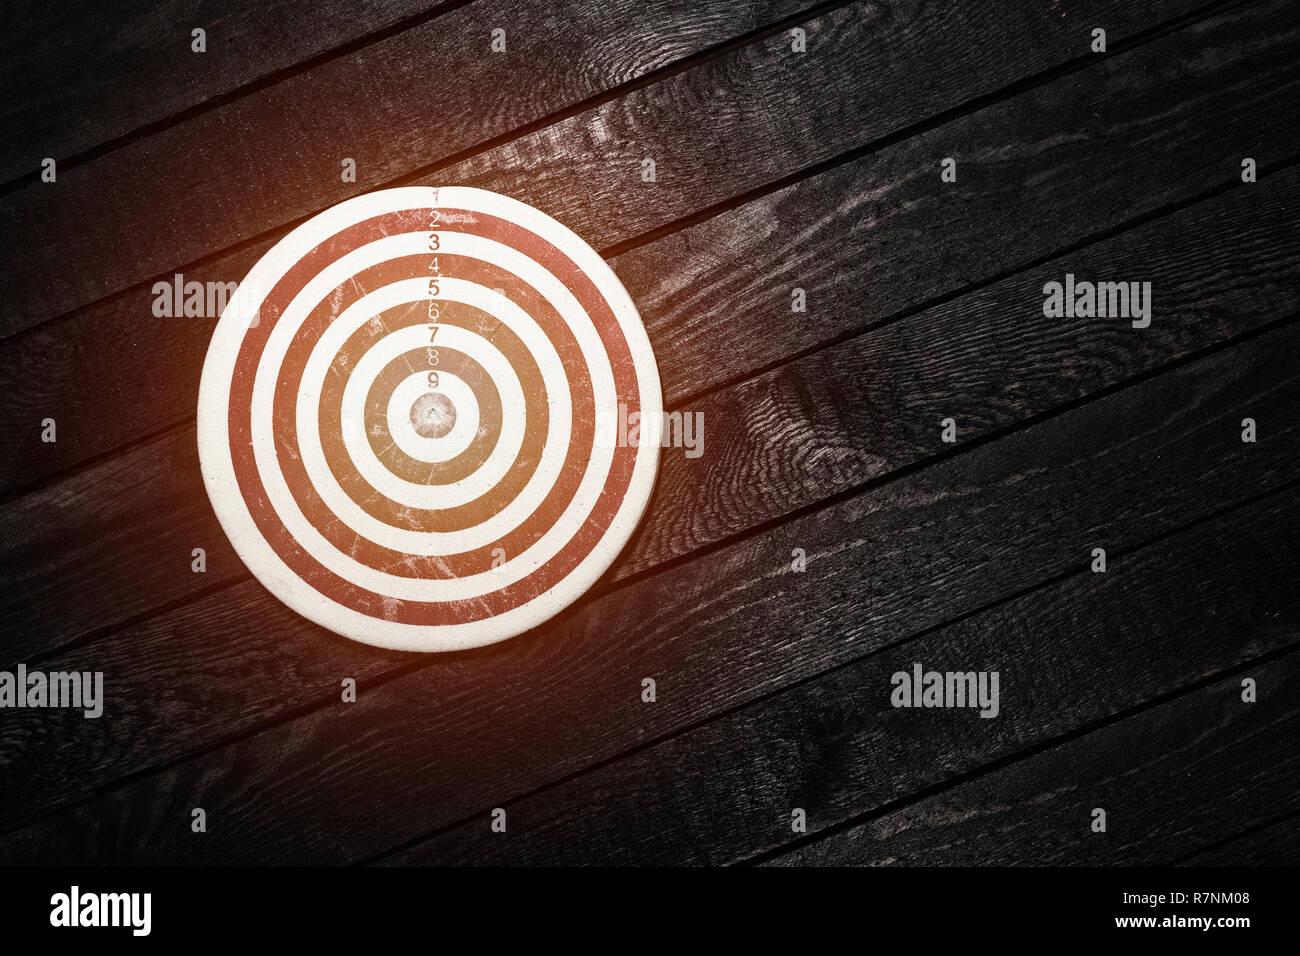 Dart board on dark wooden table. Business concept. - Stock Image